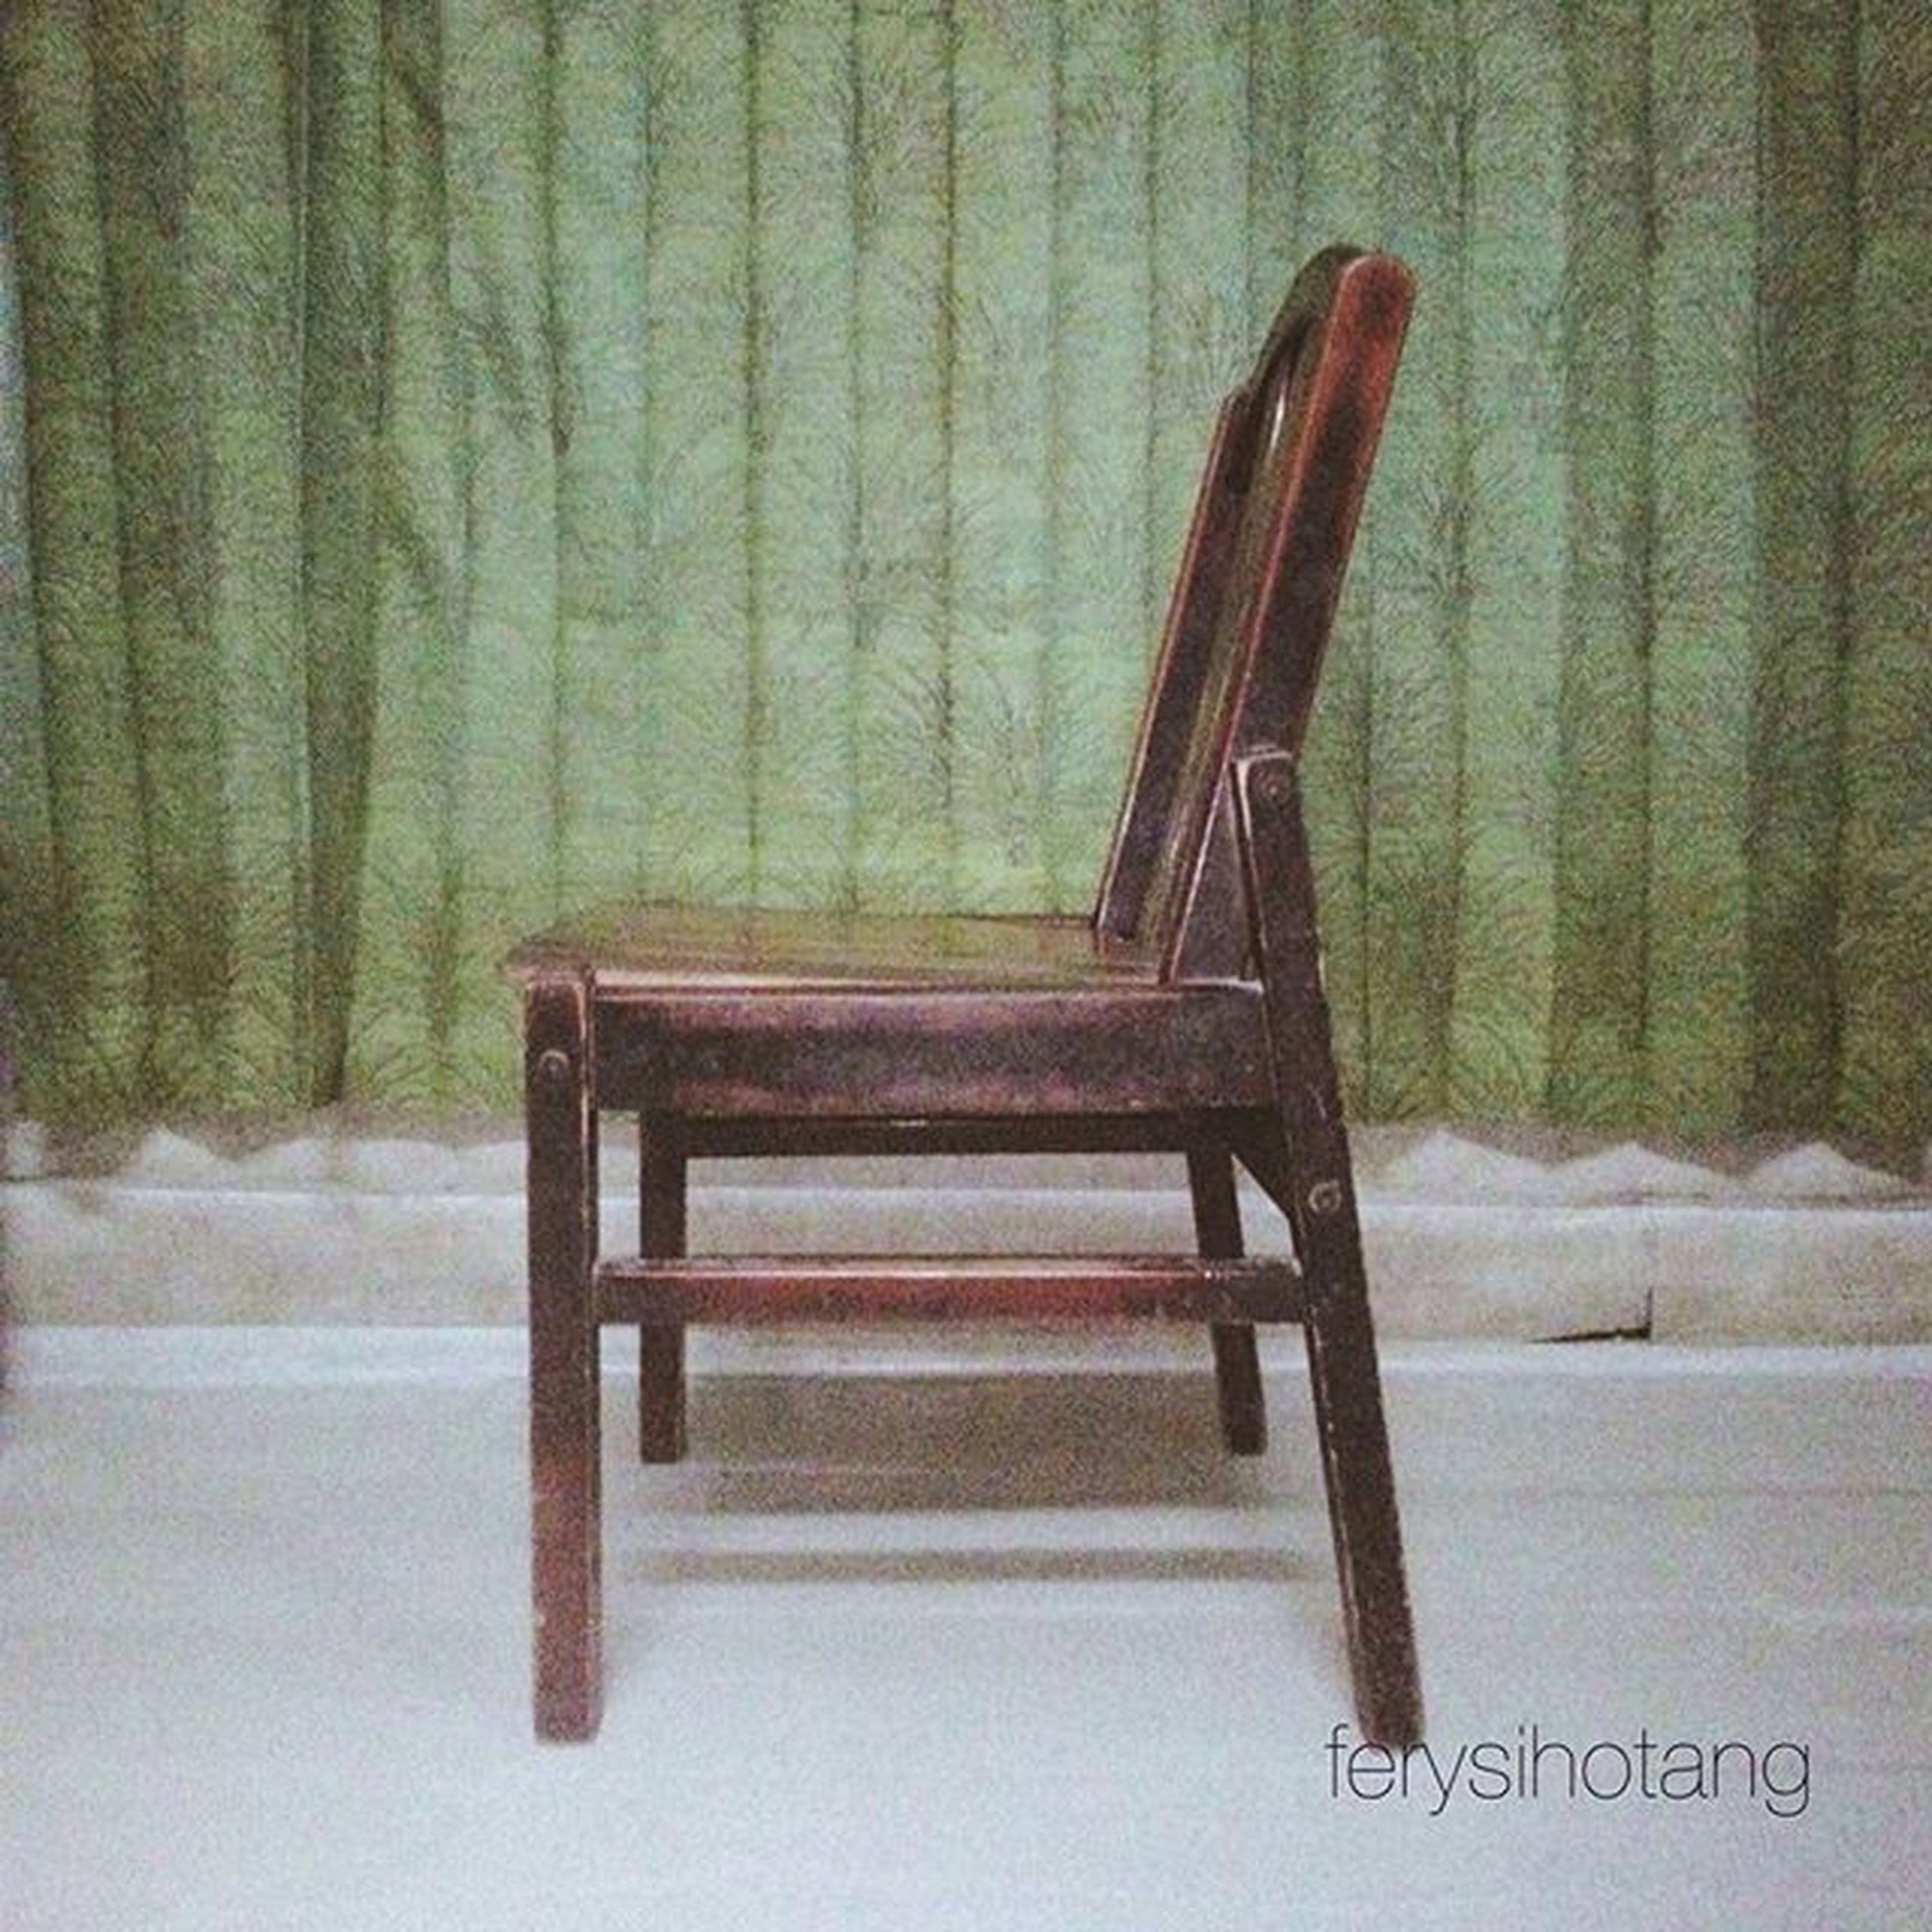 wood - material, empty, absence, bench, wooden, tree, table, day, no people, wood, nature, chair, tranquility, wall - building feature, seat, outdoors, built structure, sunlight, growth